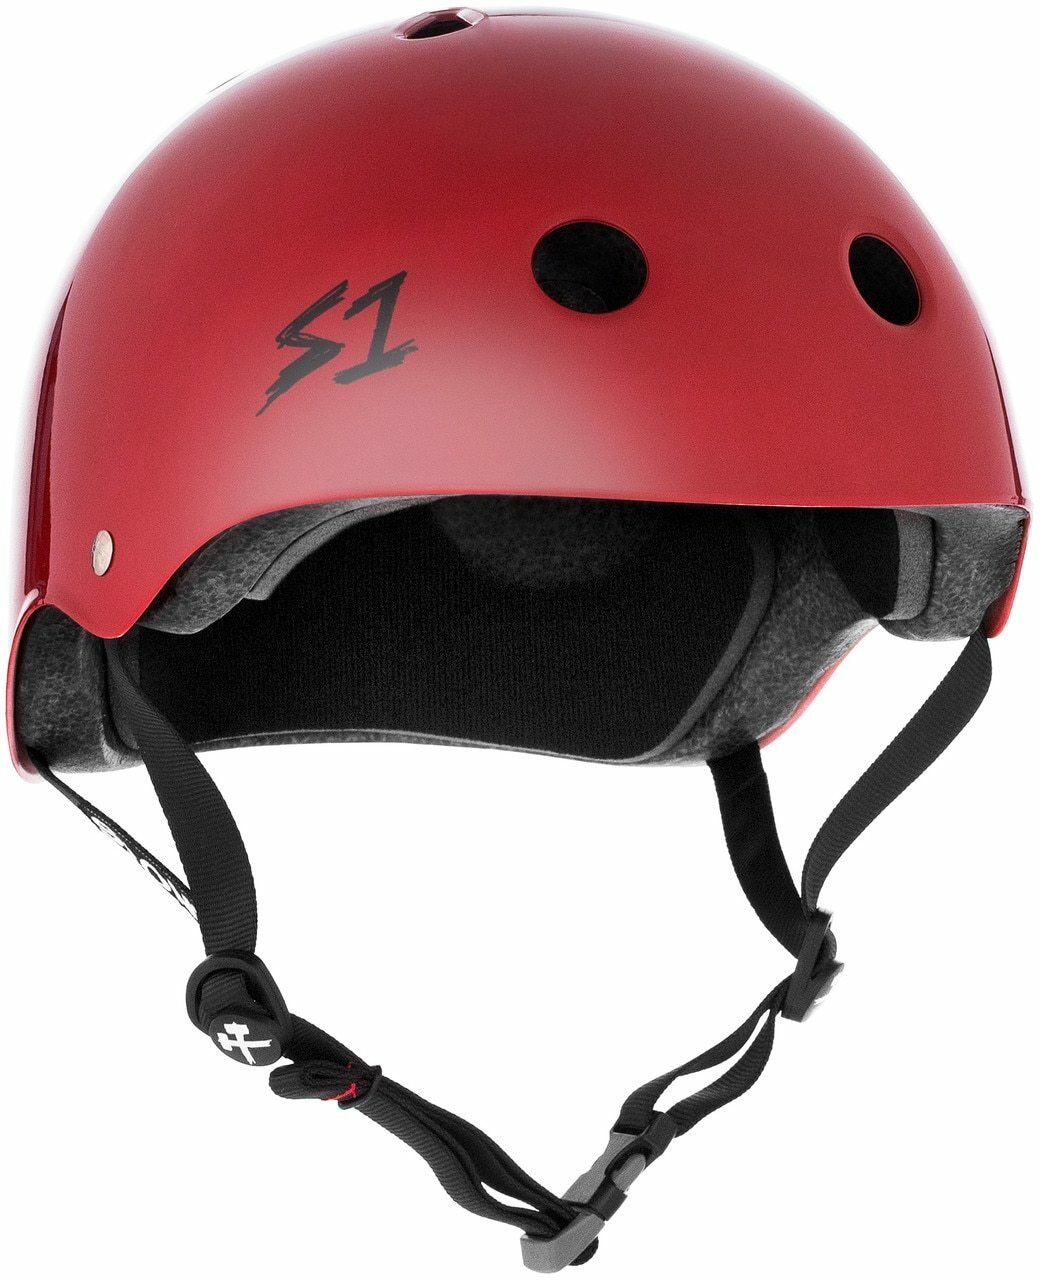 S1 Mega Lifer Helmet -  Scarlet Red Gloss  70% off cheap